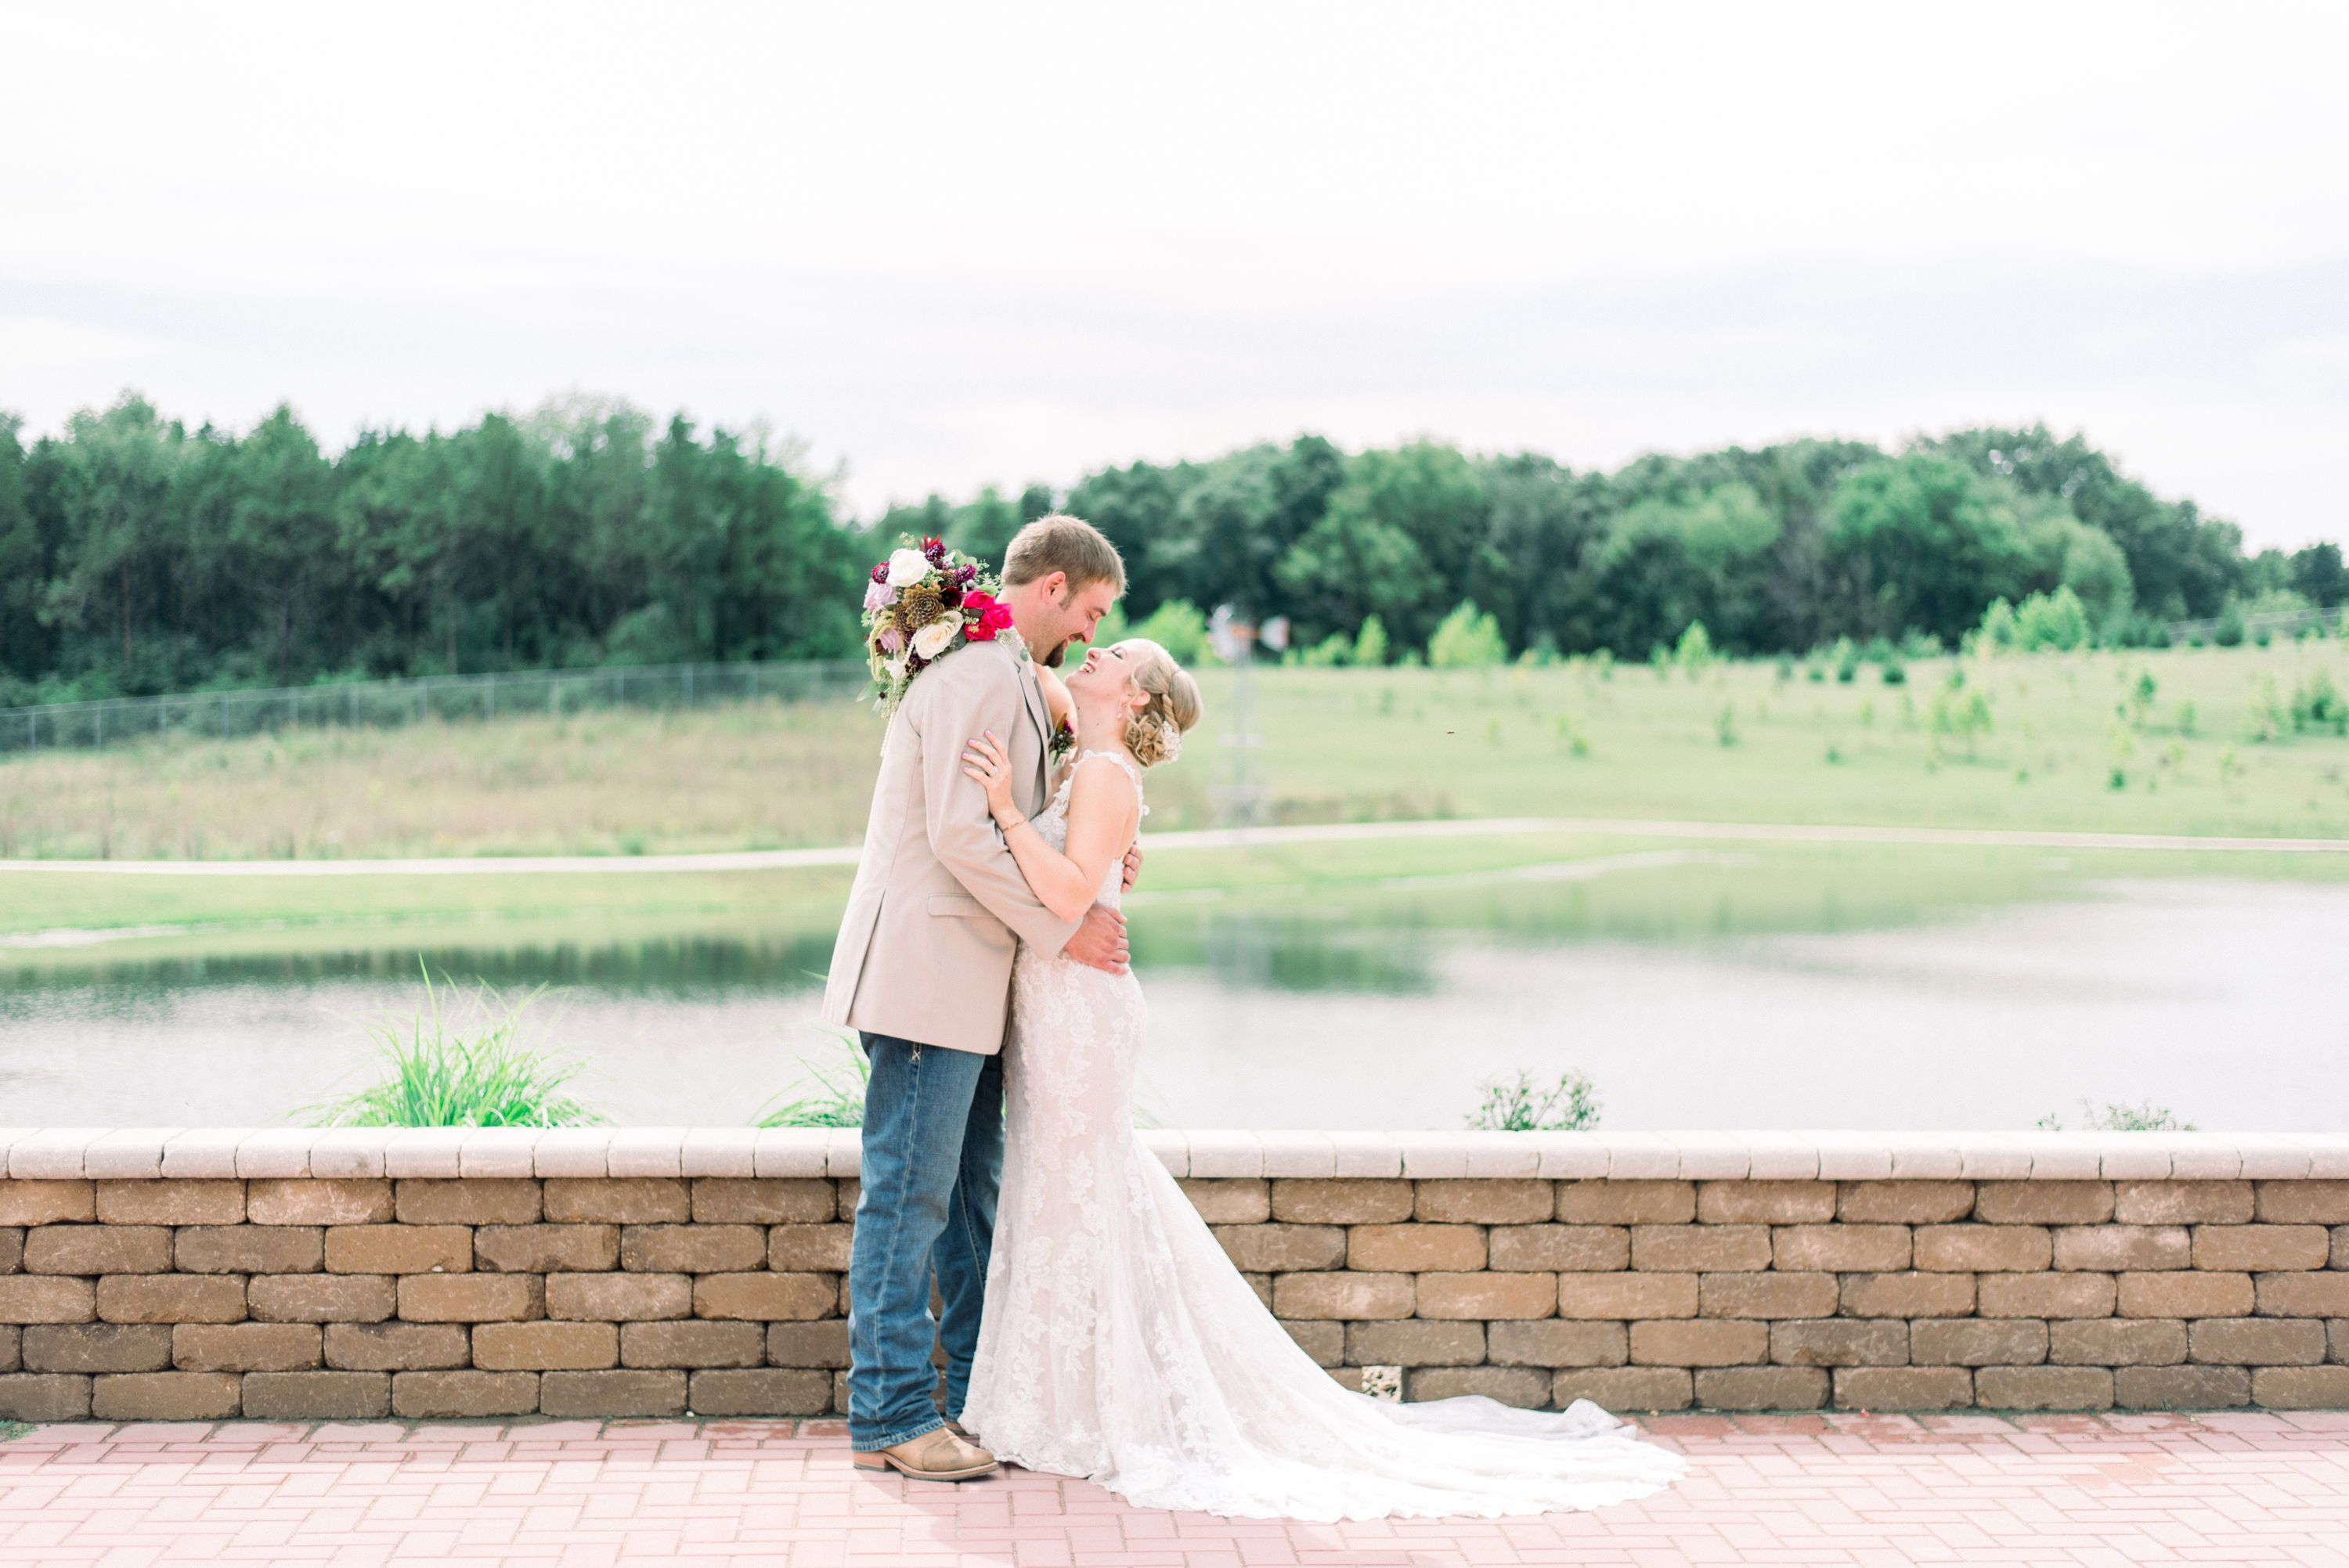 Roller wedding bride and groom pinterest white lace wedding